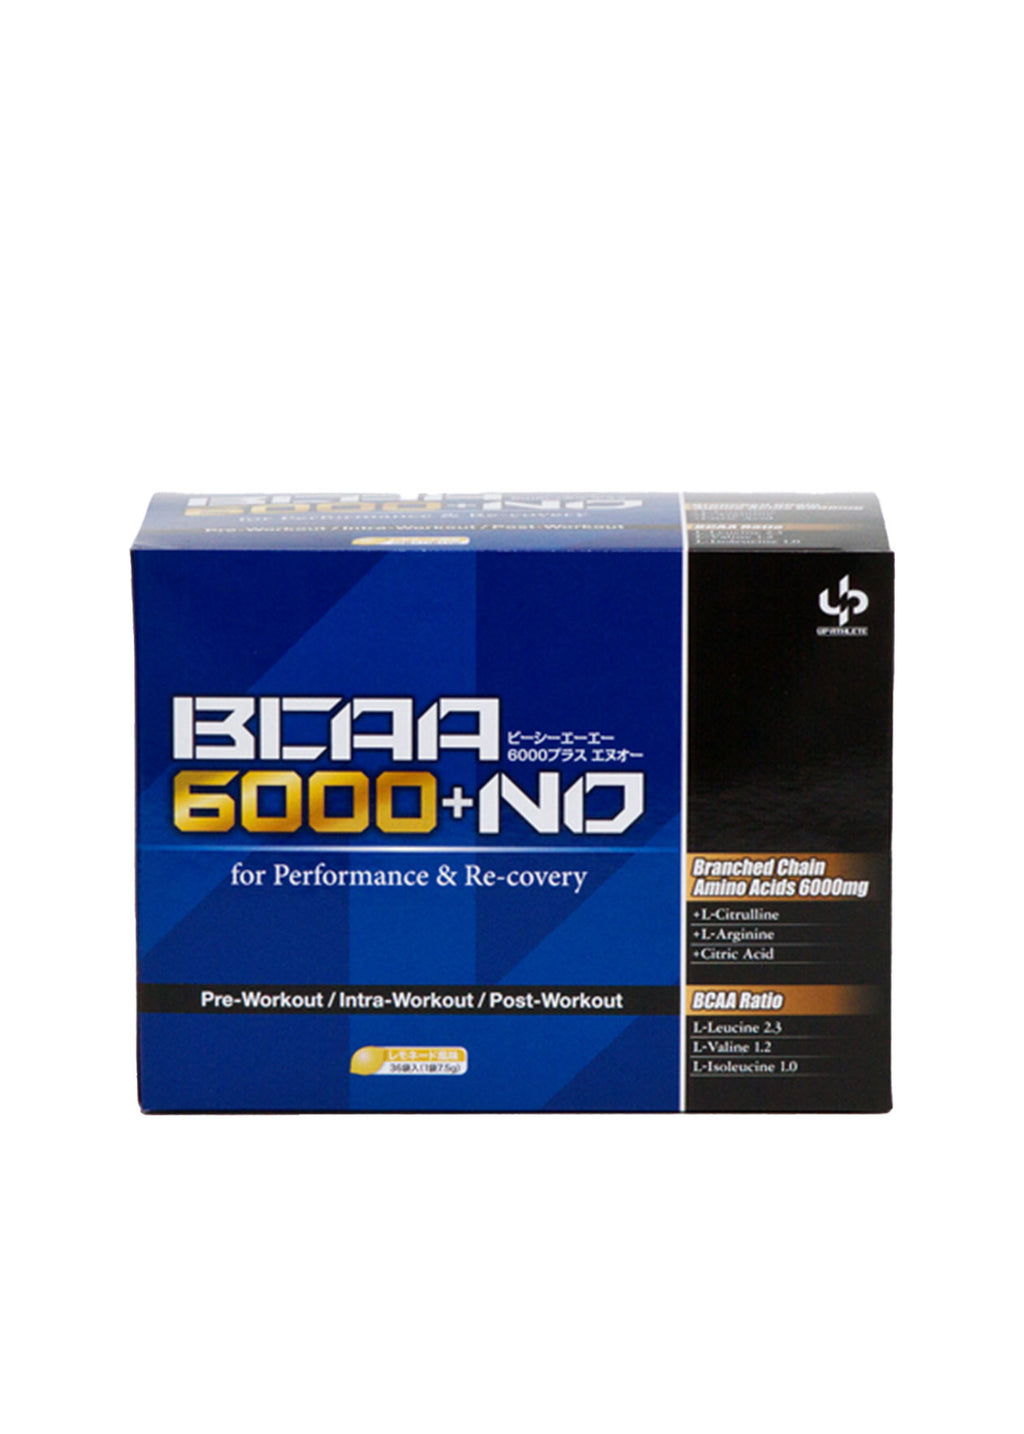 BCAA6000+NO for Performance & Recovery